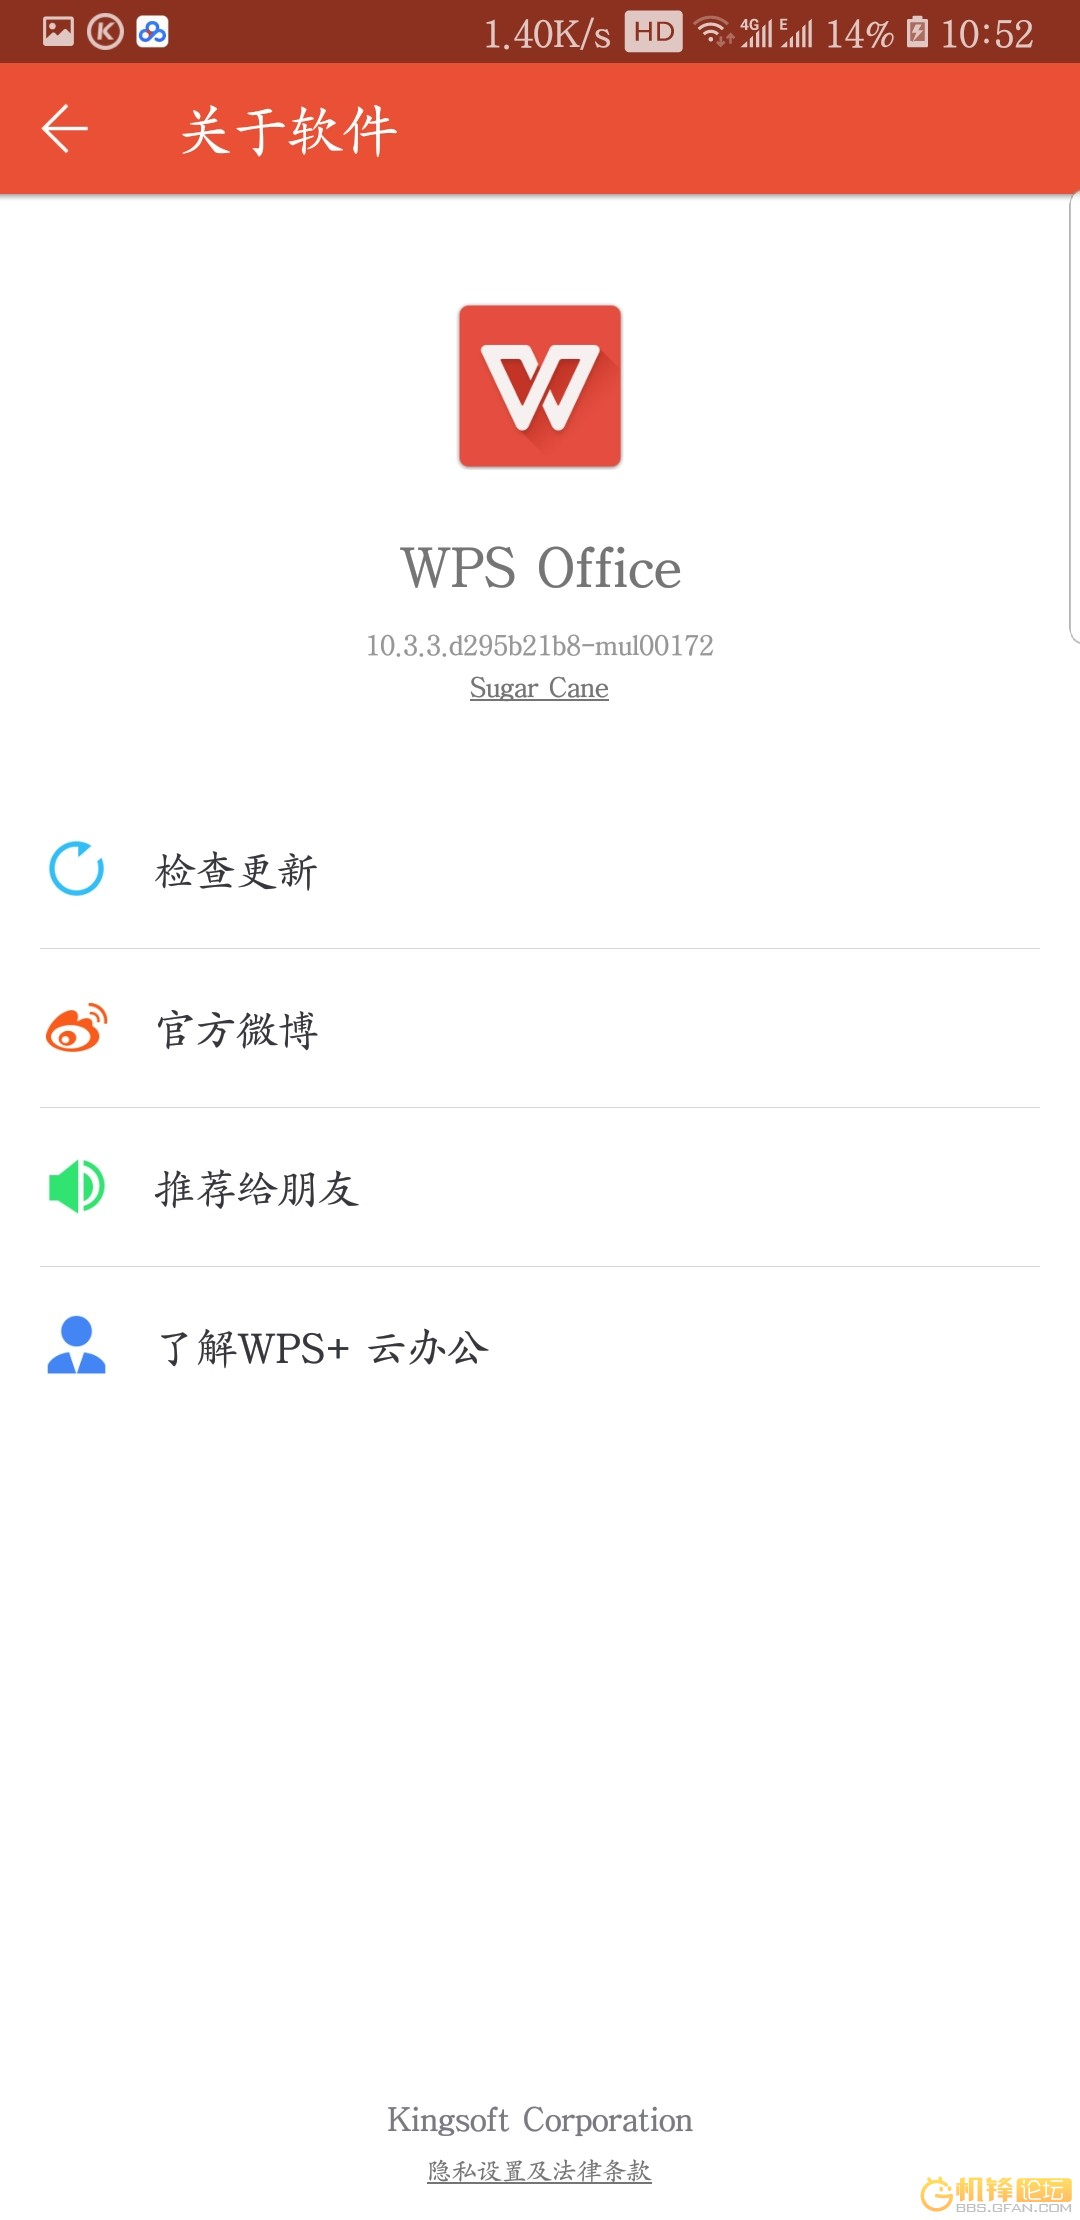 Screenshot_20180712-105225_WPS Office.jpg